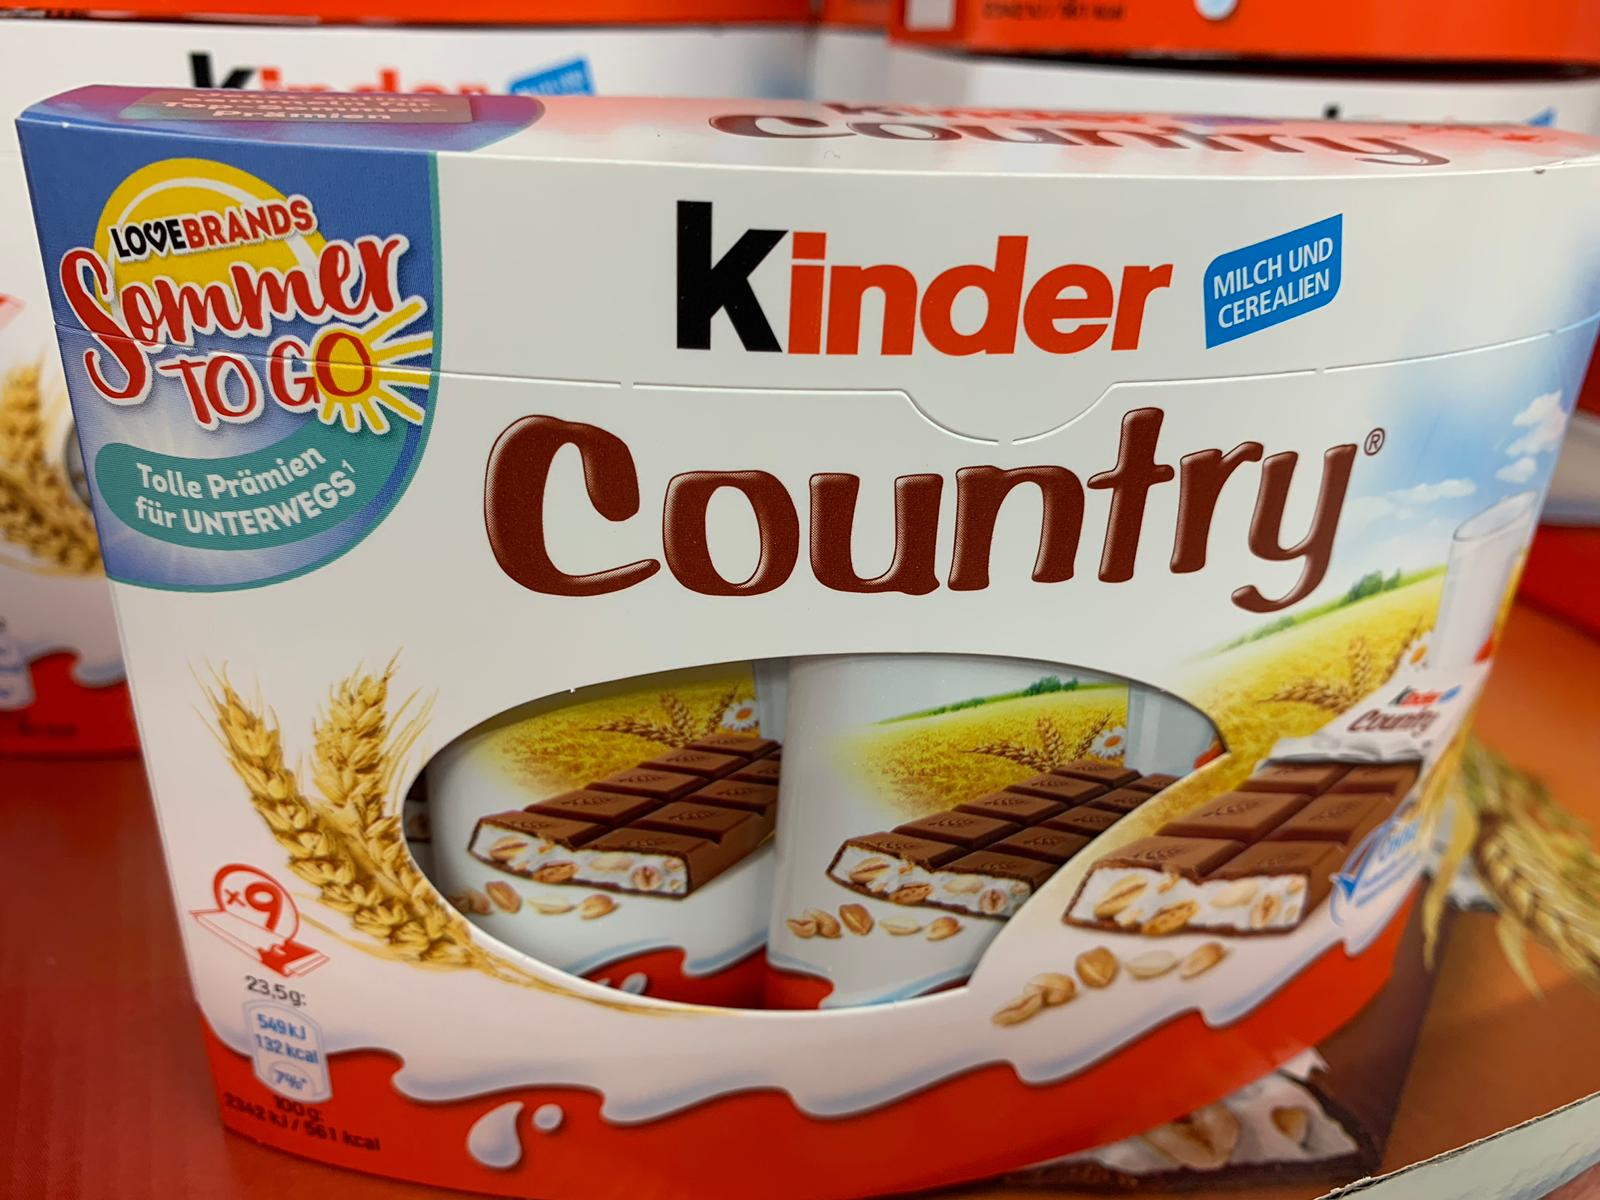 Kinder Sommer To Go